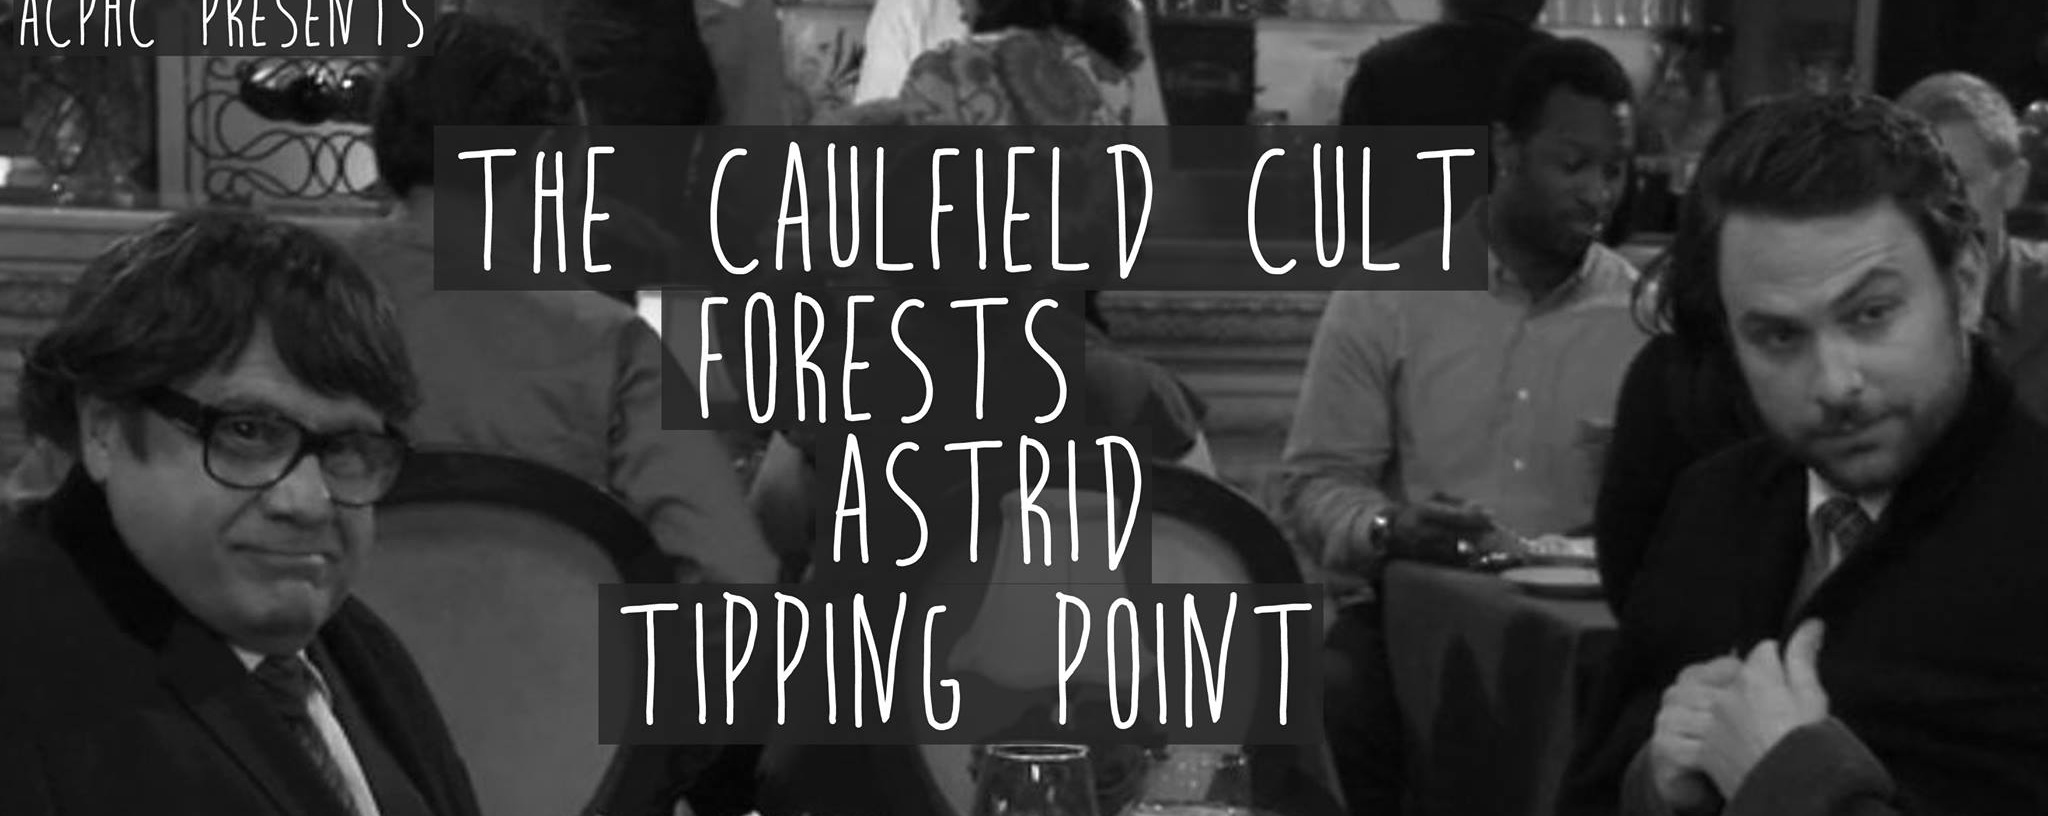 astrid/tcc/forests/tipping point